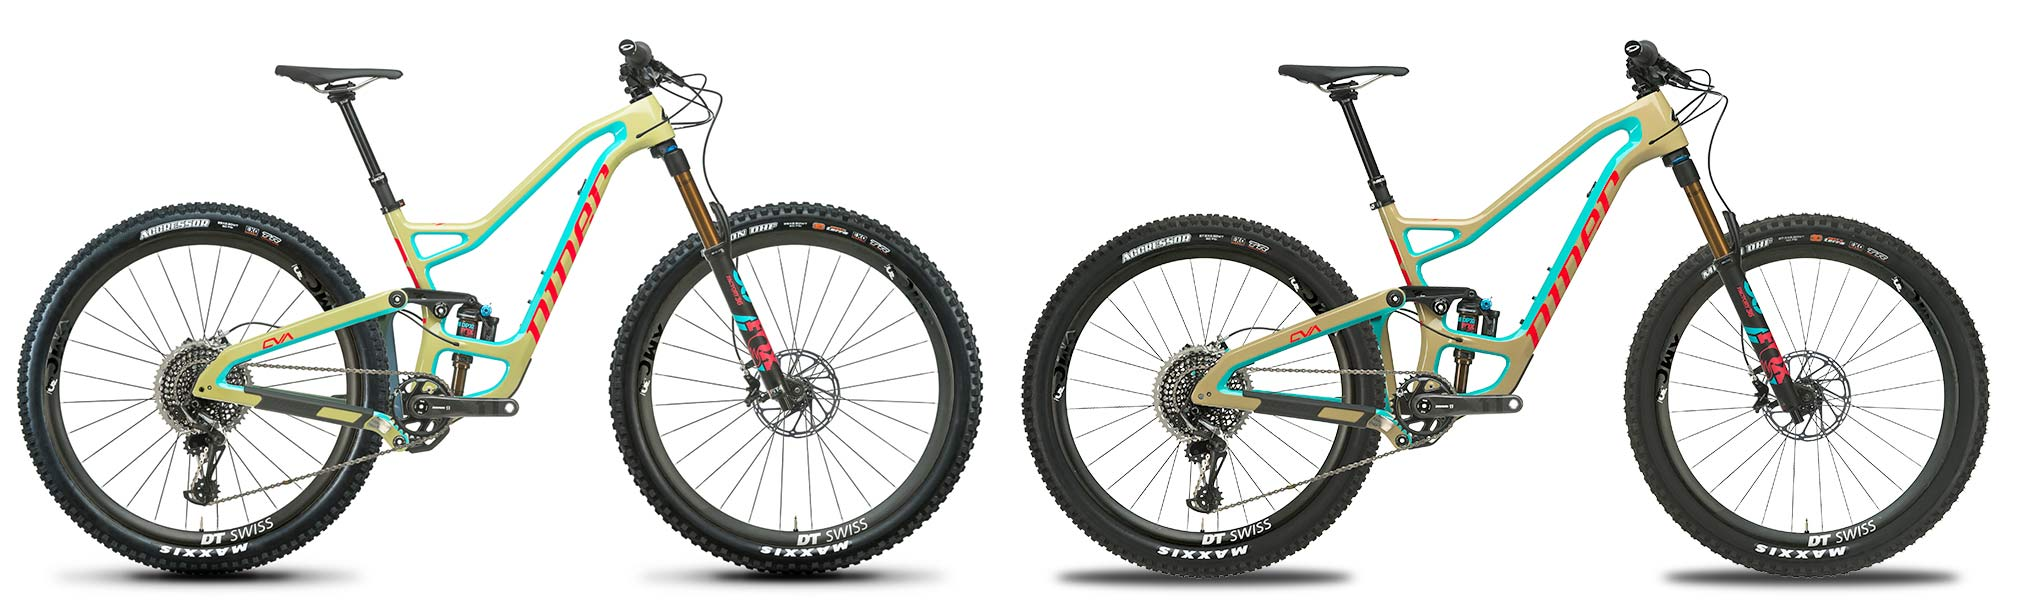 wheel size comparison for 29er and 275 on new Niner RIP9 RDO mountain bike